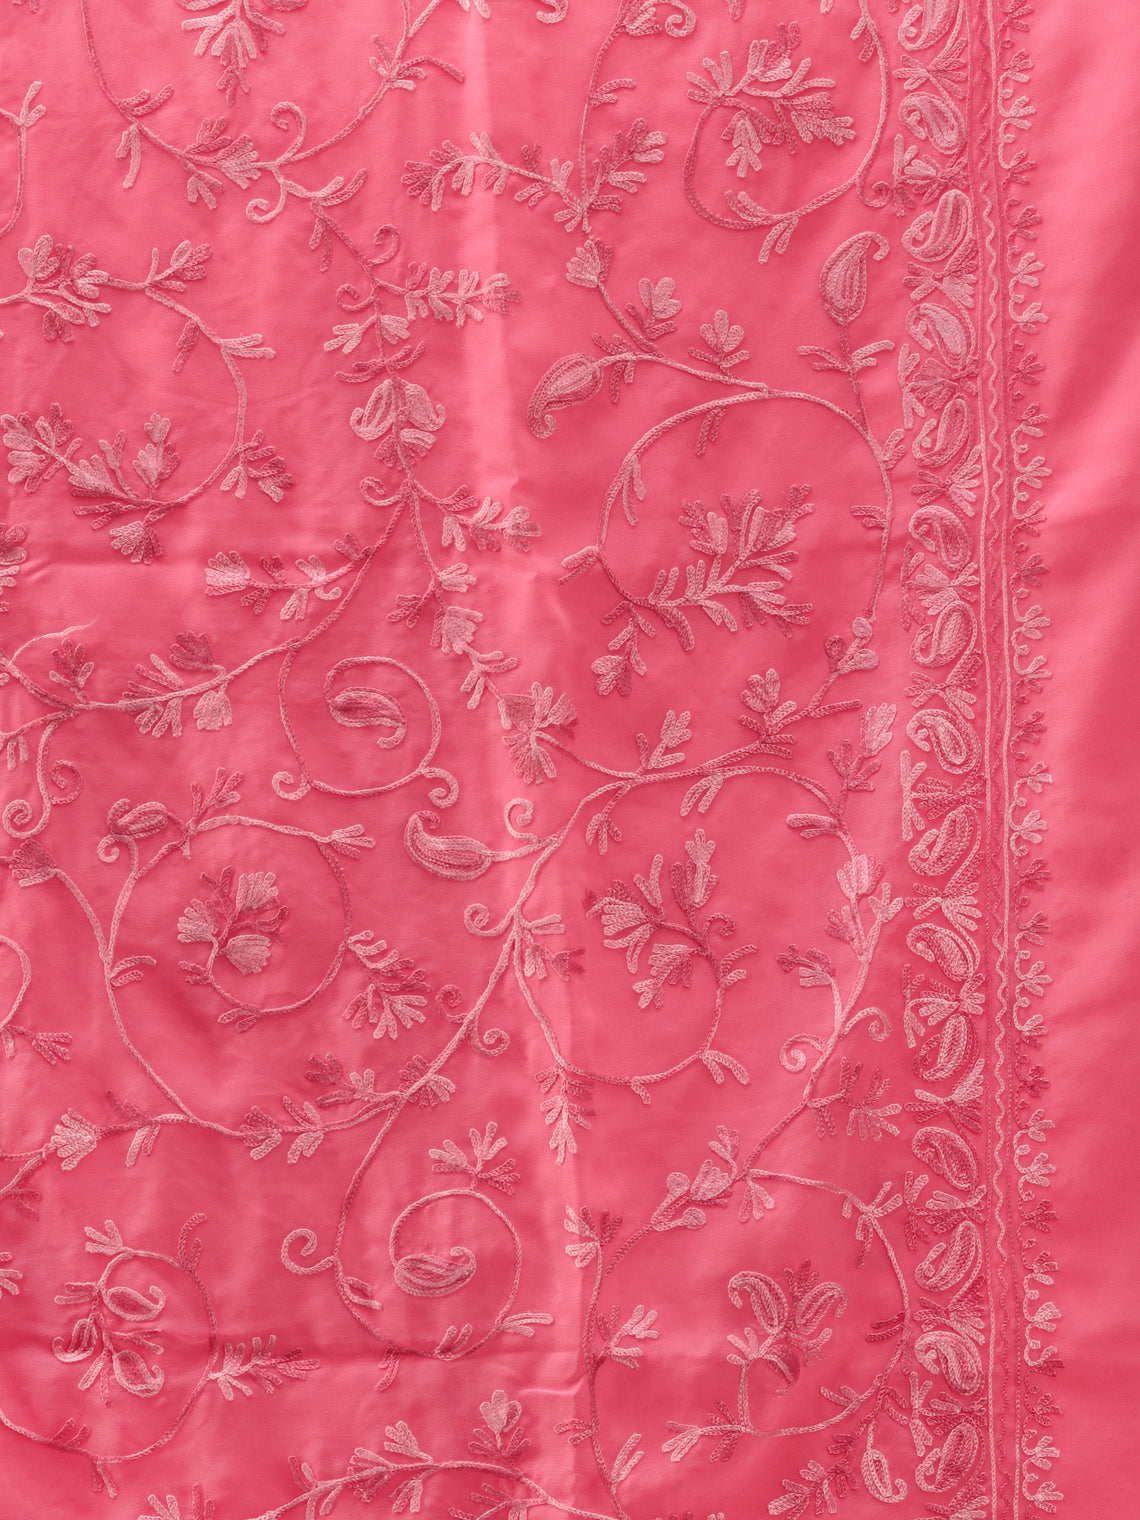 Pink Aari Embroidered Georgette Saree From Kashmir - S031704639